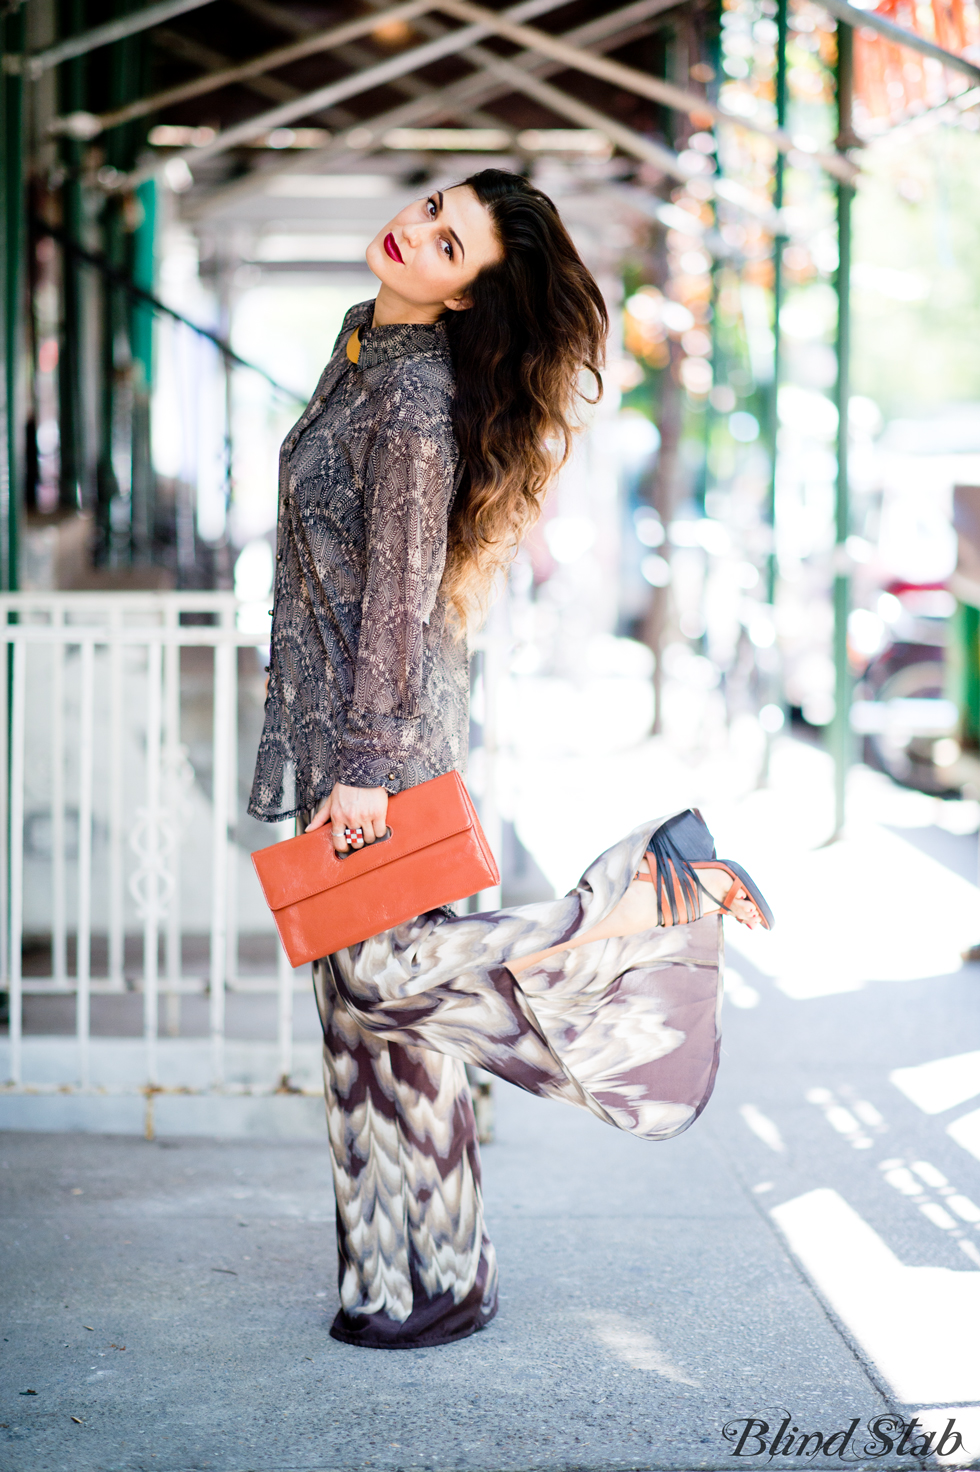 LD-Tuttle-Pattern-Pants-Streetstyle